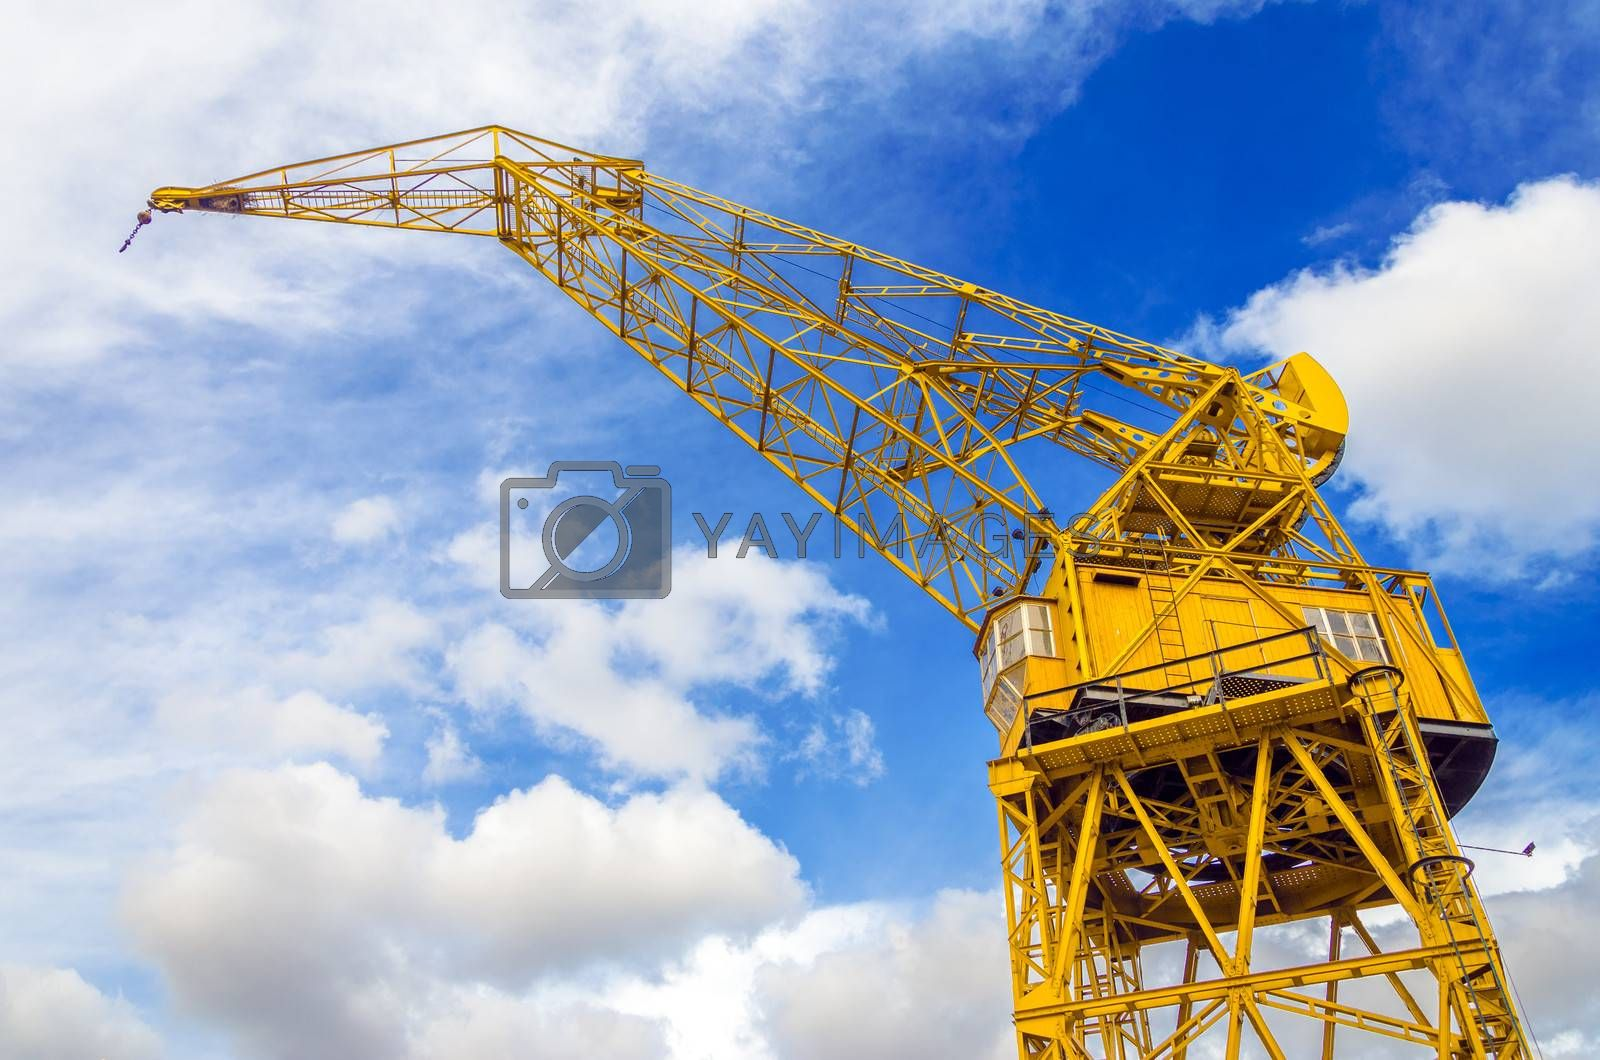 Old yellow crane and sky in Puerto Madero neighborhood of Buenos Aires, Argentina